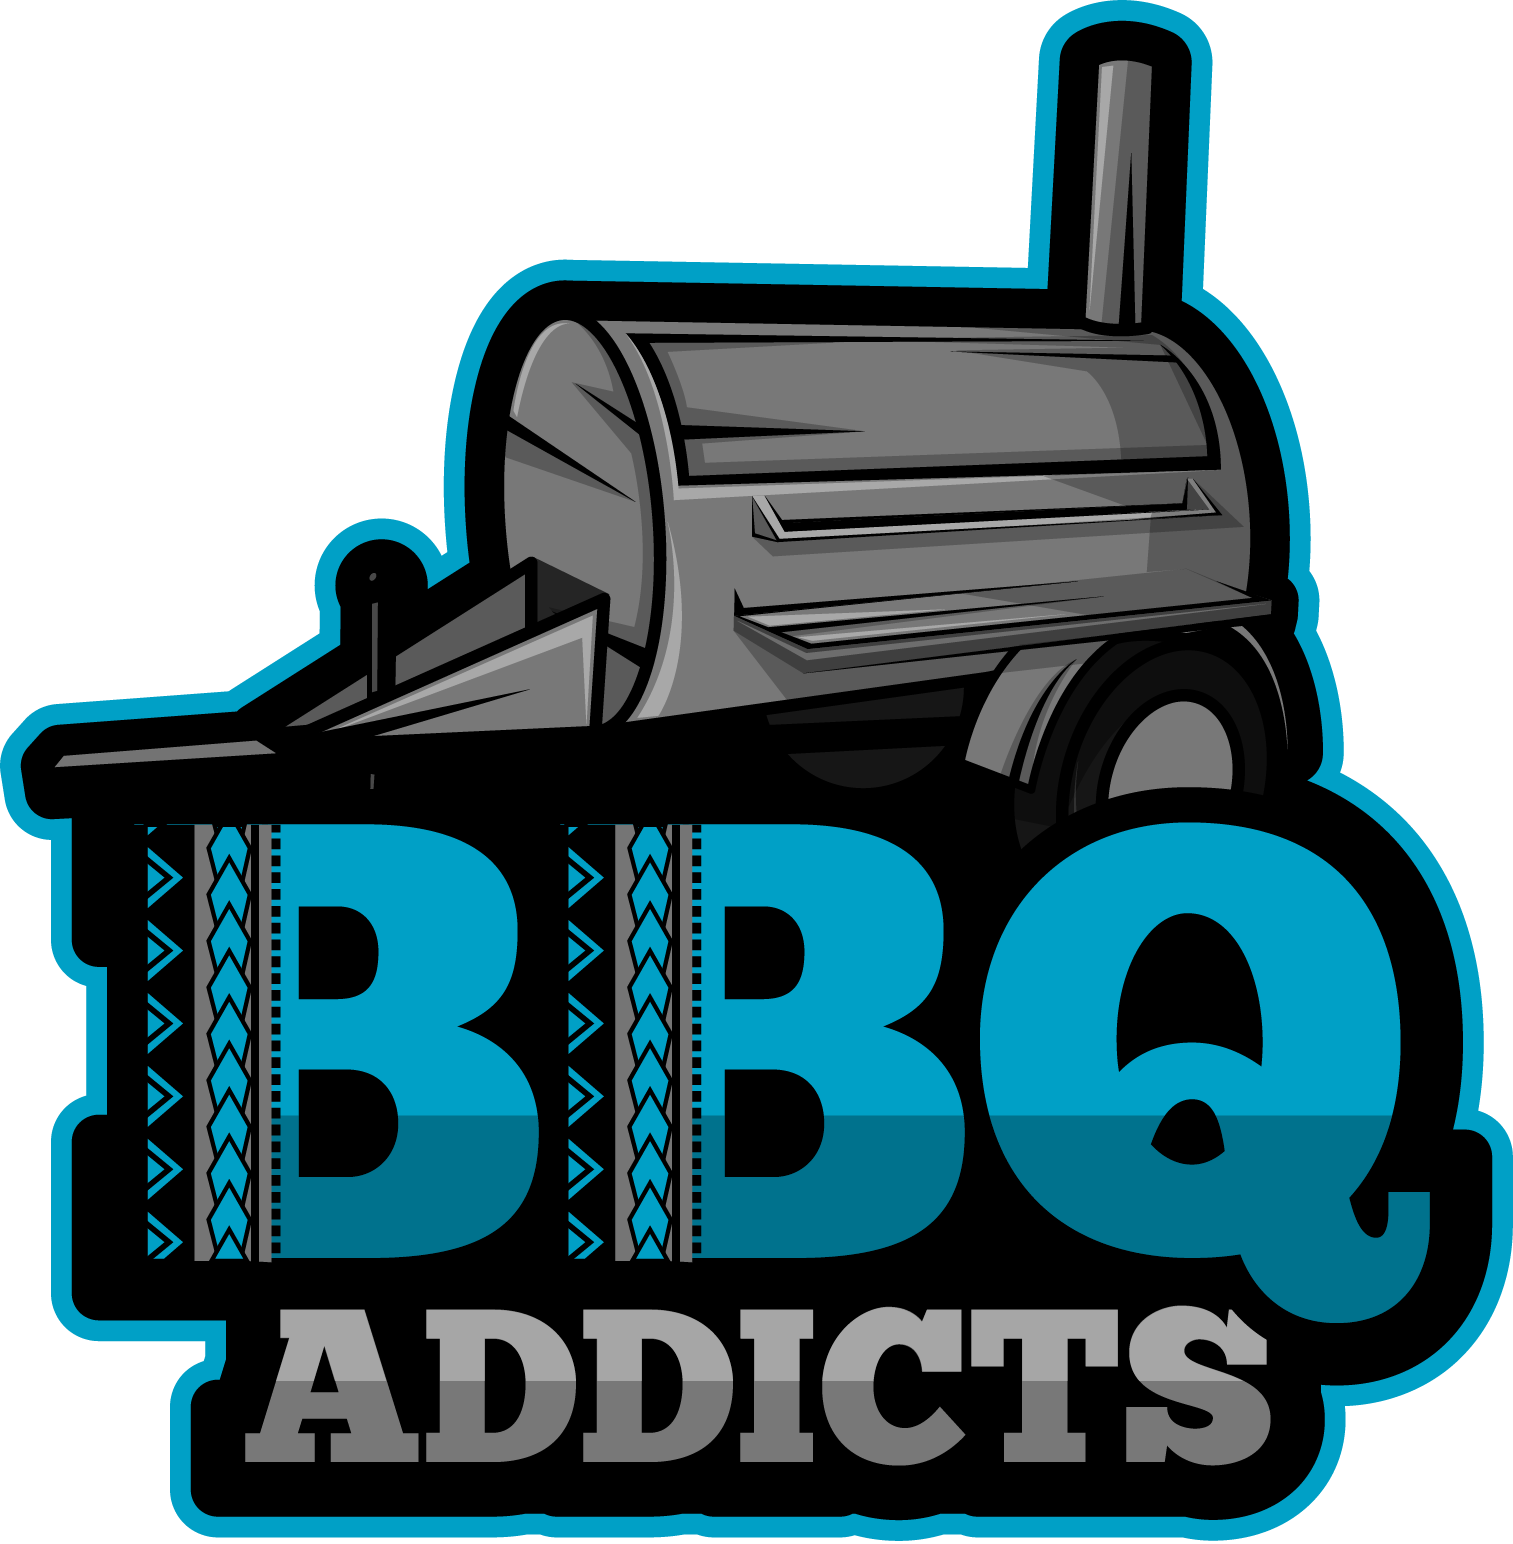 BBQ Addicts